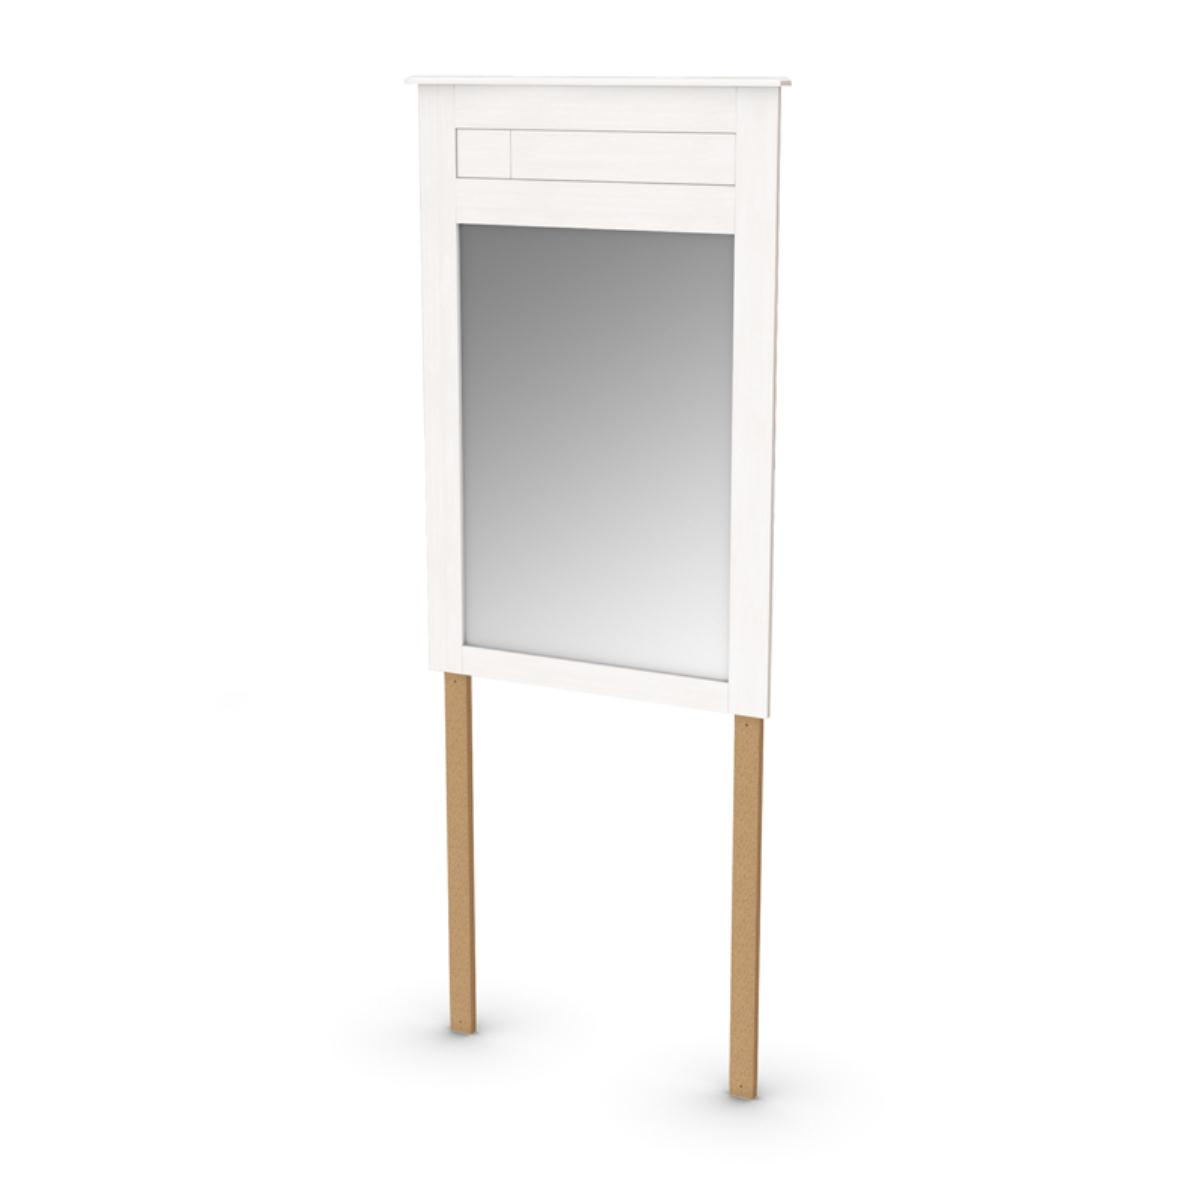 South Shore Vendome Mirror 31.5 Inch x 46.75 Inch - White Wash